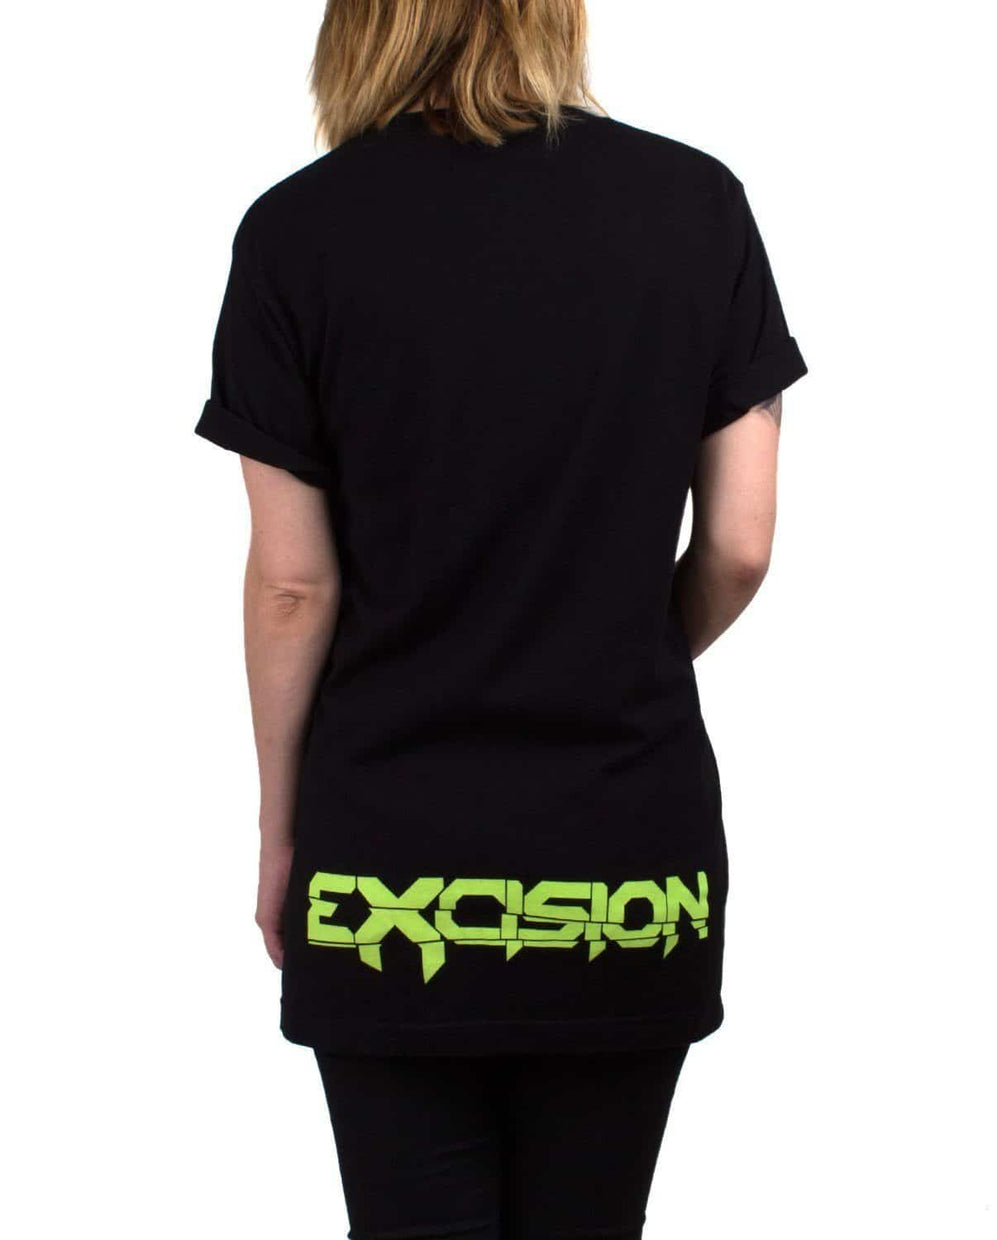 Excision Zombie X Black Unisex T-Shirt